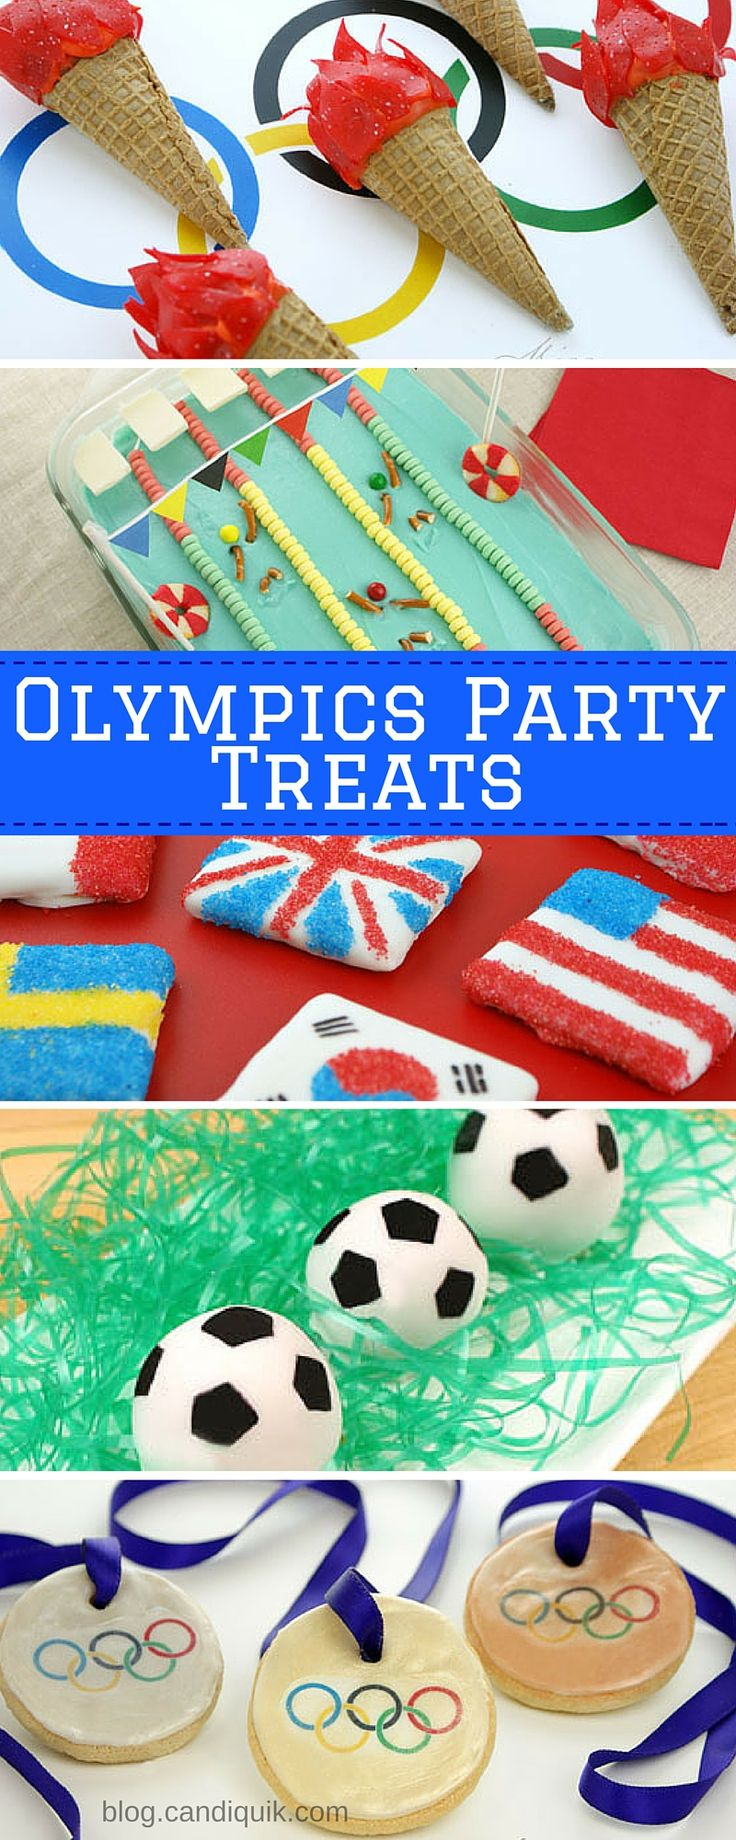 20+ Olympic Themed Treats for Rio 2016!! blog.candiquik.com